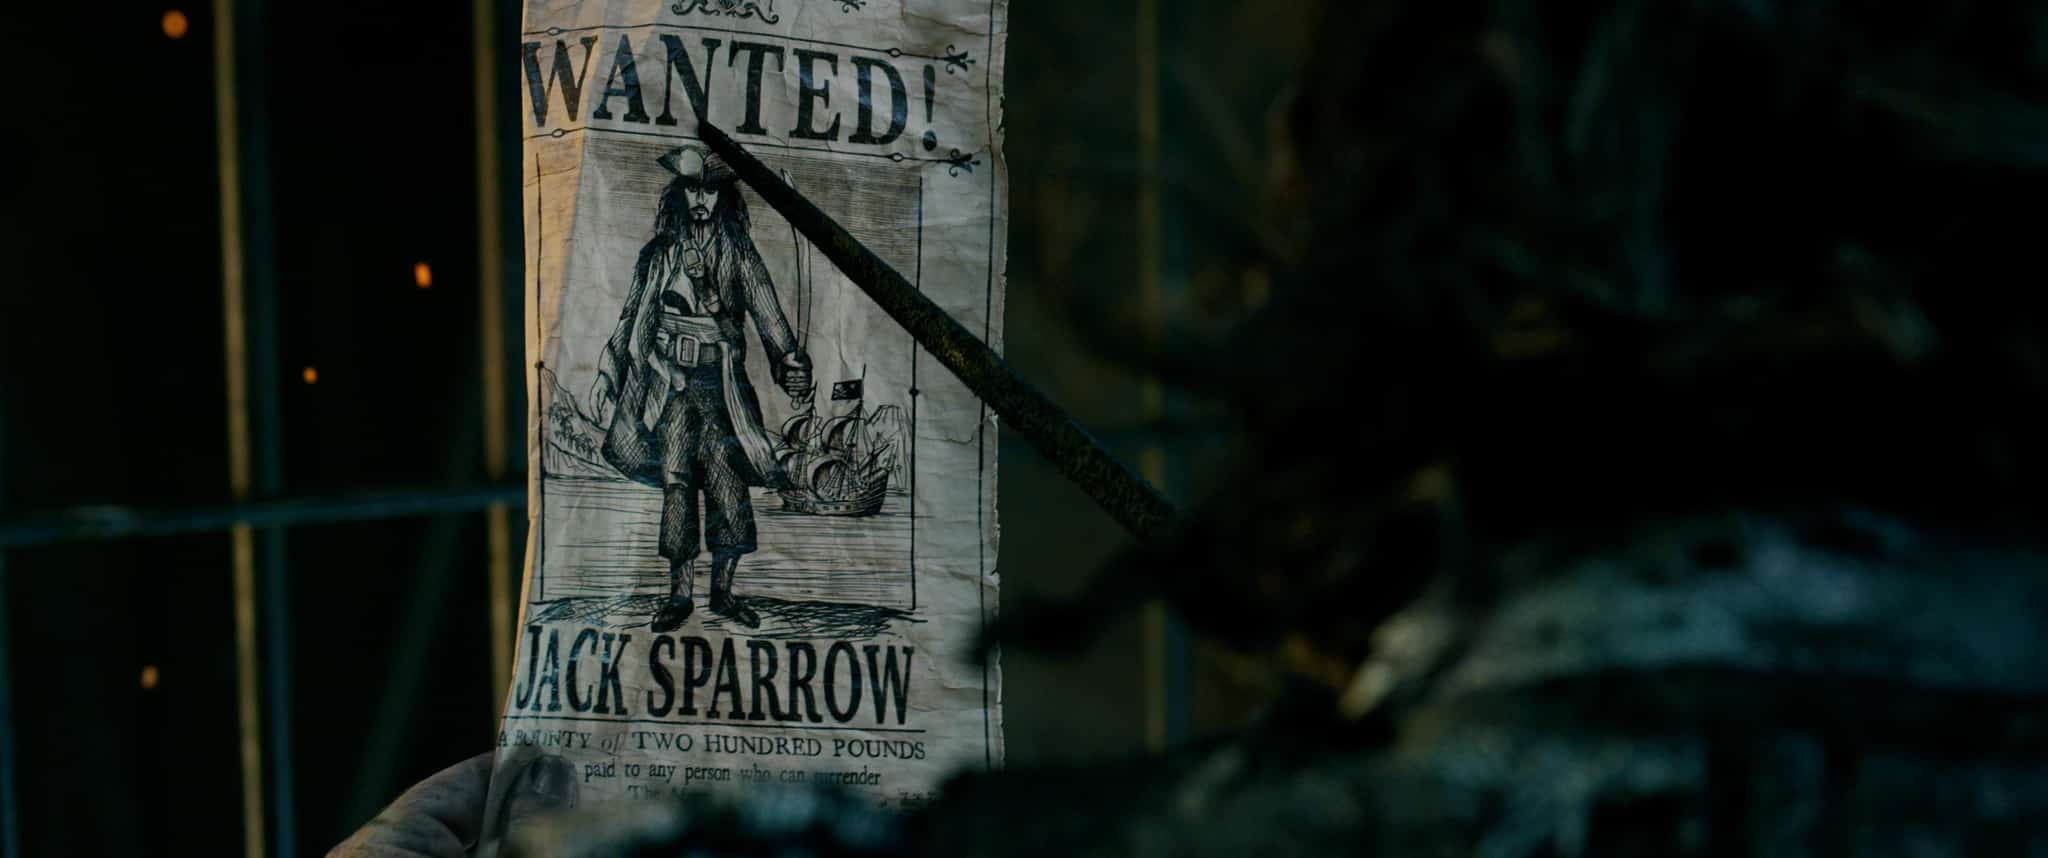 NEW Trailer for Pirates Of The Caribbean: Dead Men Tell No Tales! #APiratesDeathForMe #PiratesOfTheCaribbean | ThisNThatwithOlivia.com